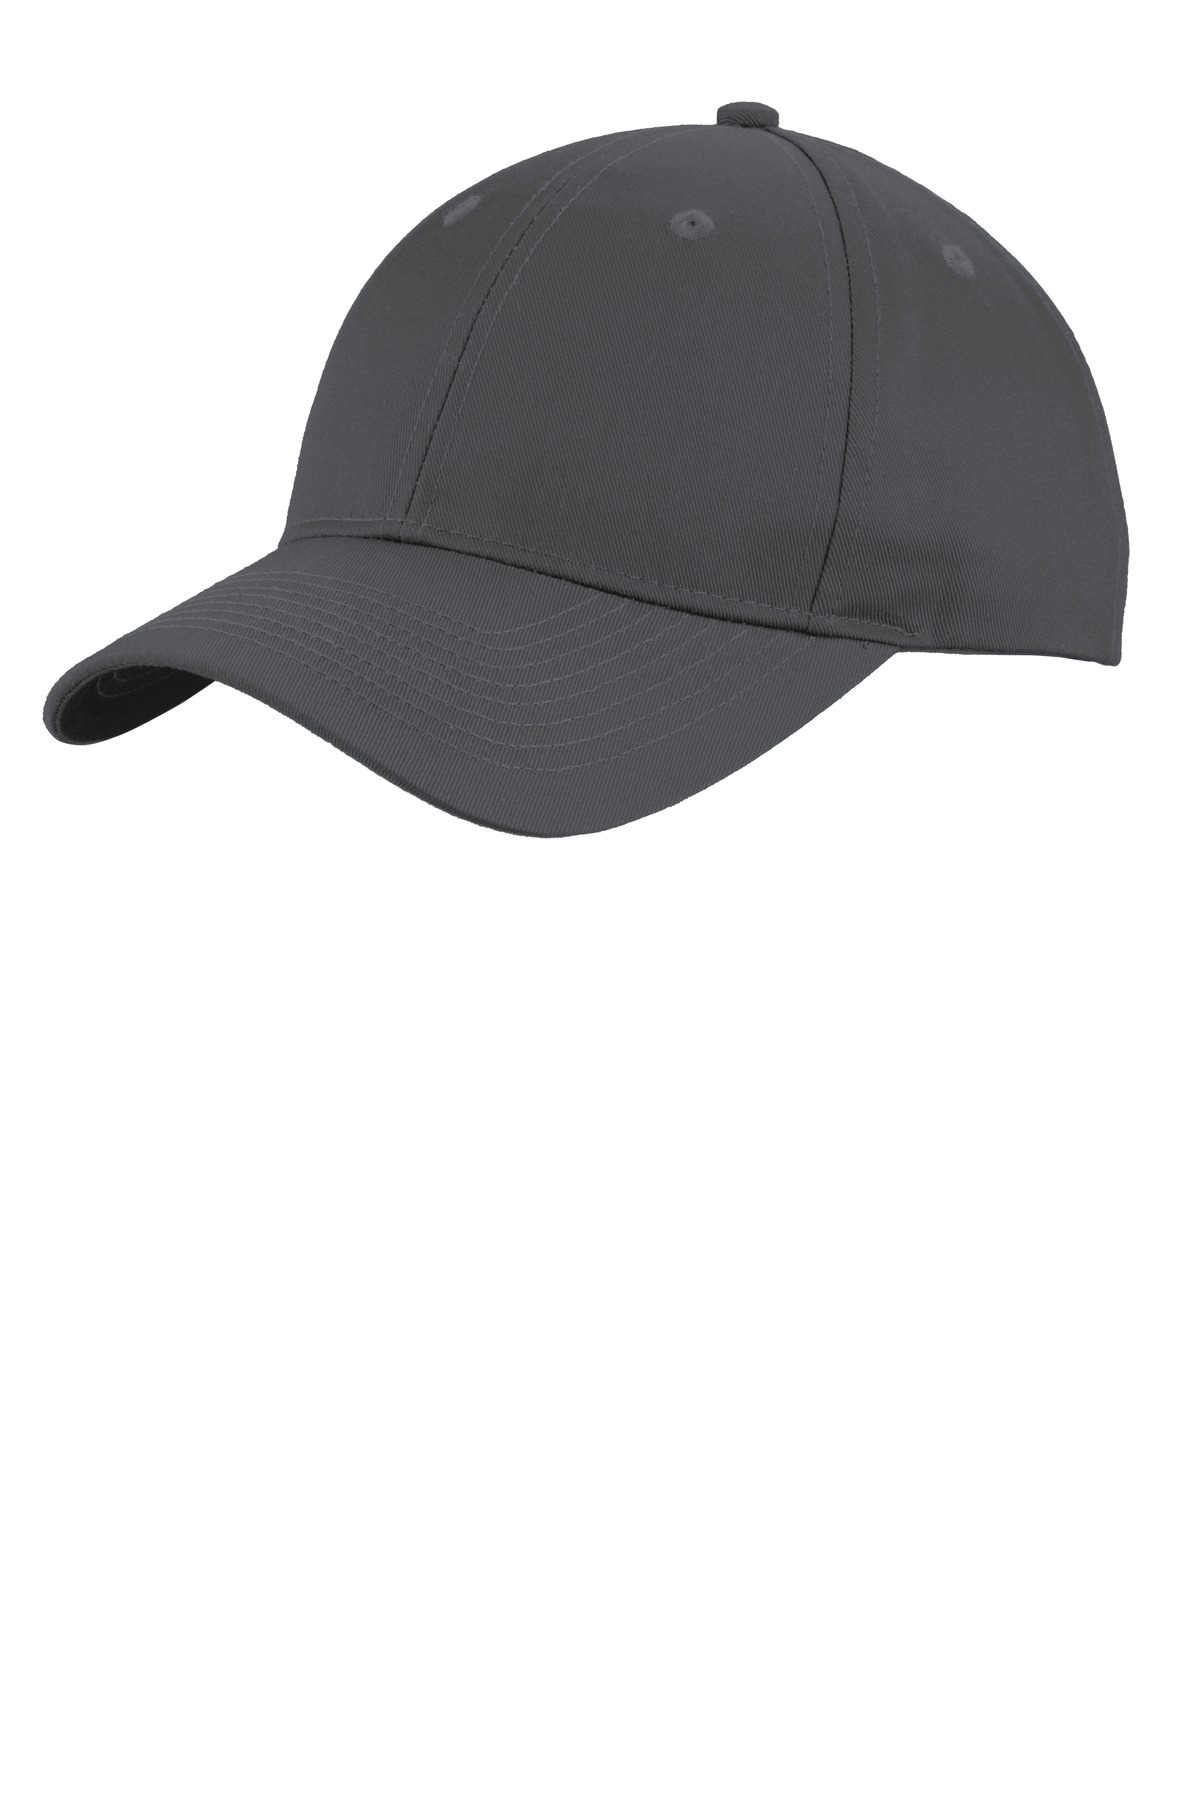 Port Authority ®  Uniforming Twill Cap. C913 - Steel Grey